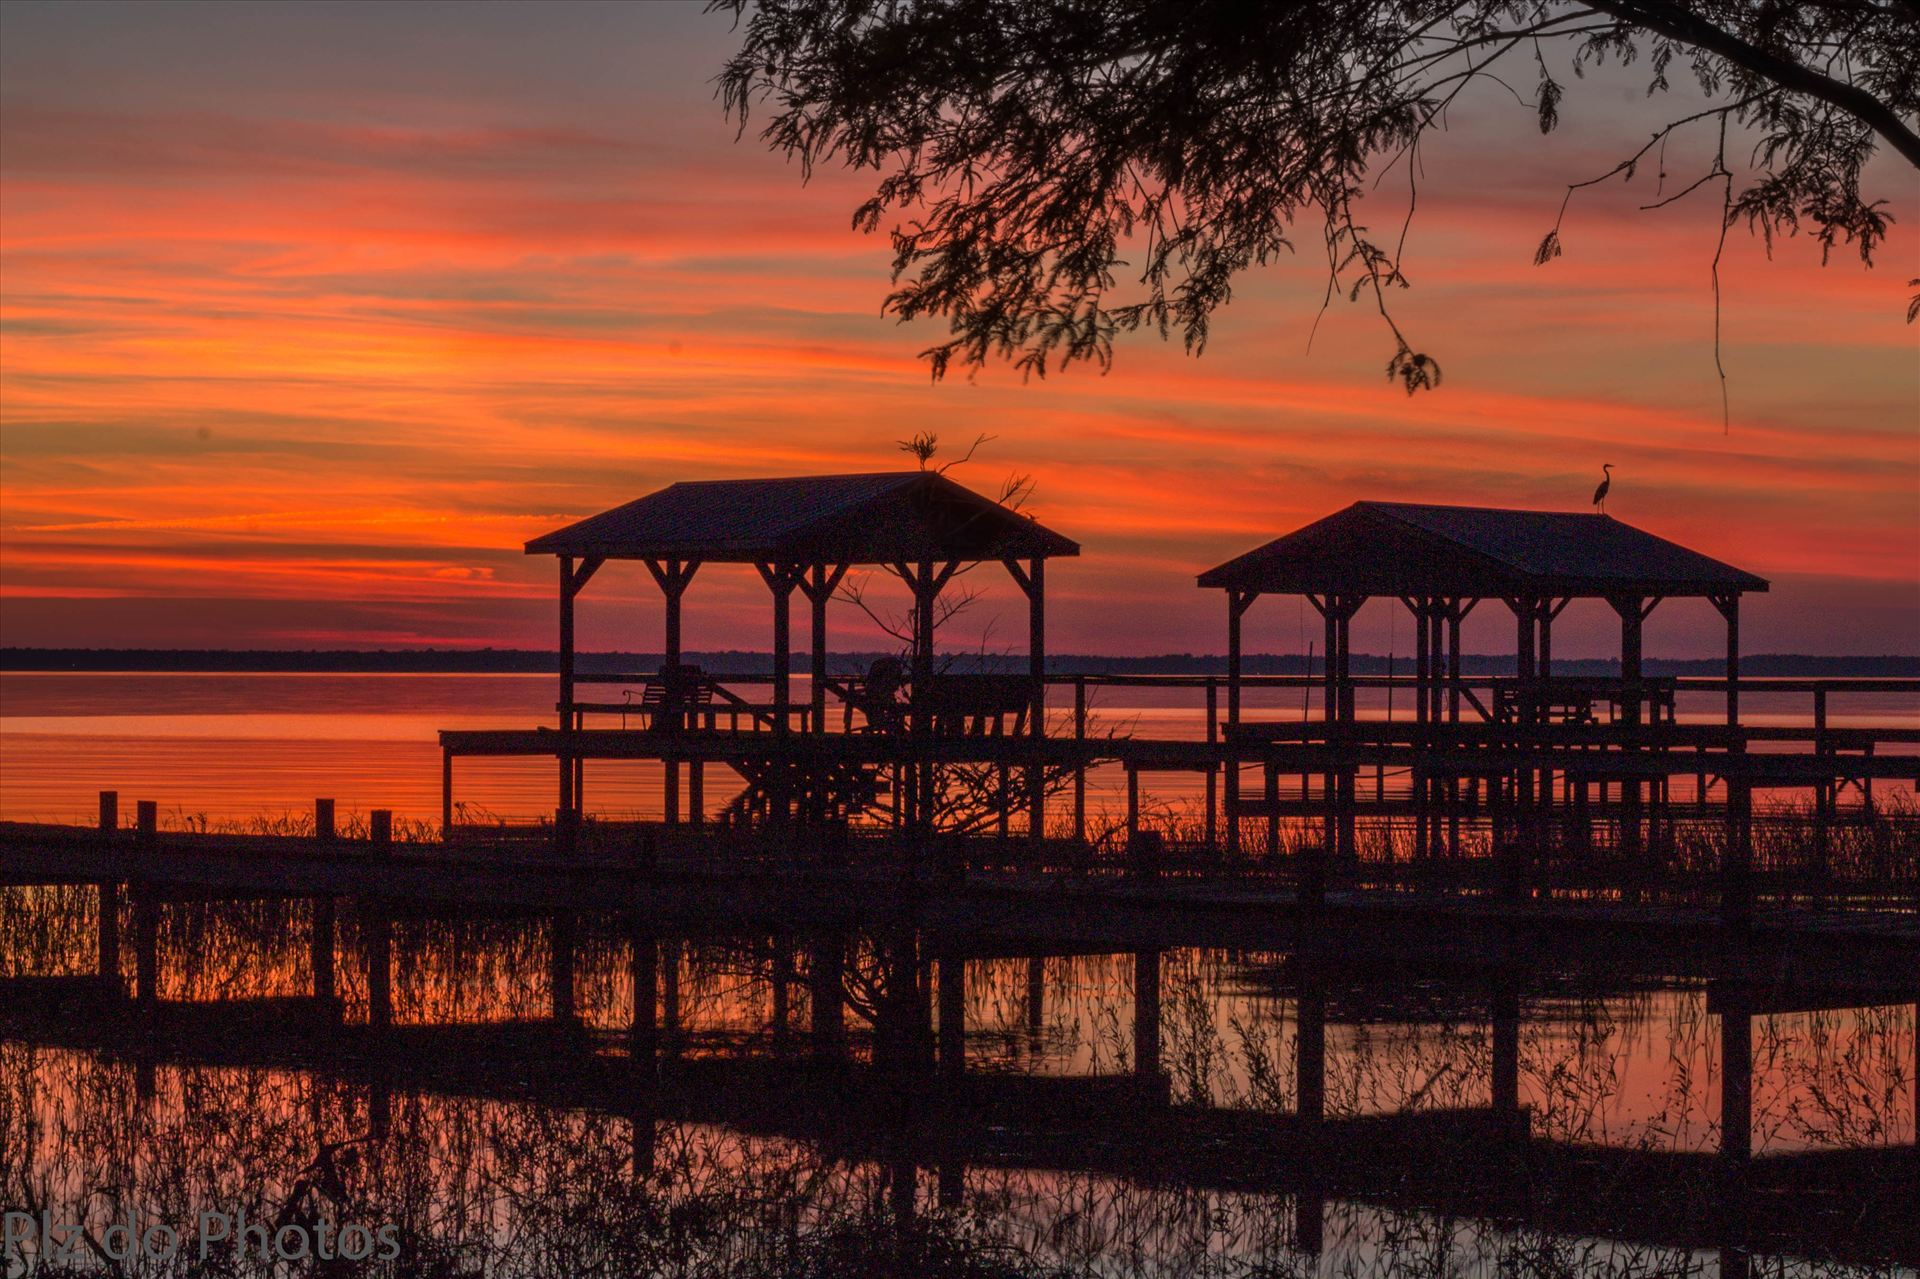 Autumn Sunset (1 of 1).jpg - Autumn sunset in Lake Waccamaw, NC. by Patricia Zyzyk